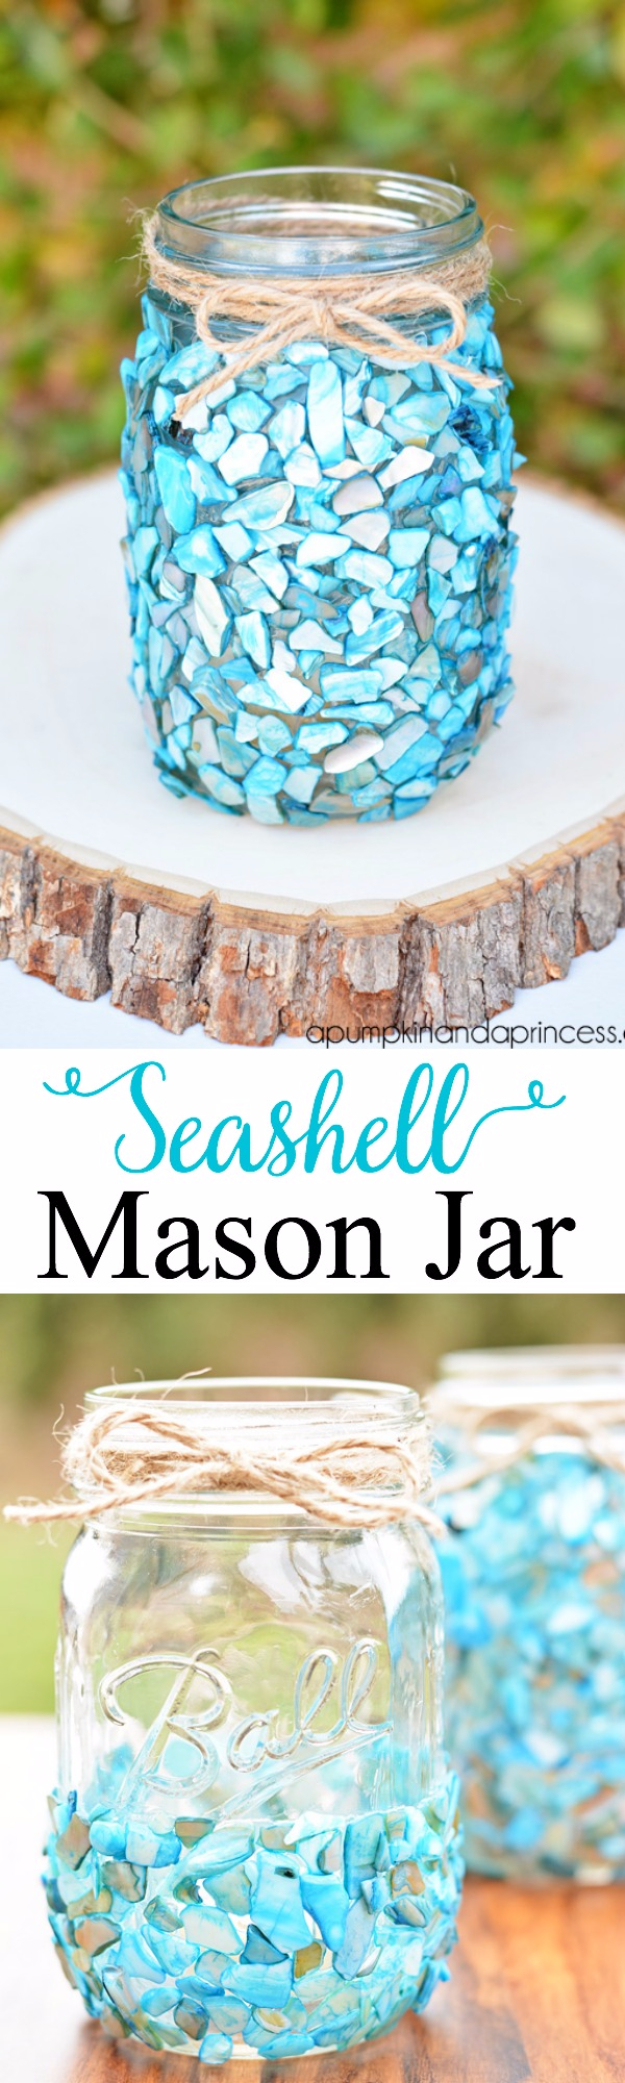 DIY Teen Room Decor Ideas for Girls | Beach Inspired Mason Jar Display | Cool Bedroom Decor, Wall Art & Signs, Crafts, Bedding, Fun Do It Yourself Projects and Room Ideas for Small Spaces #teencrafts #roomdecor #teens #diy